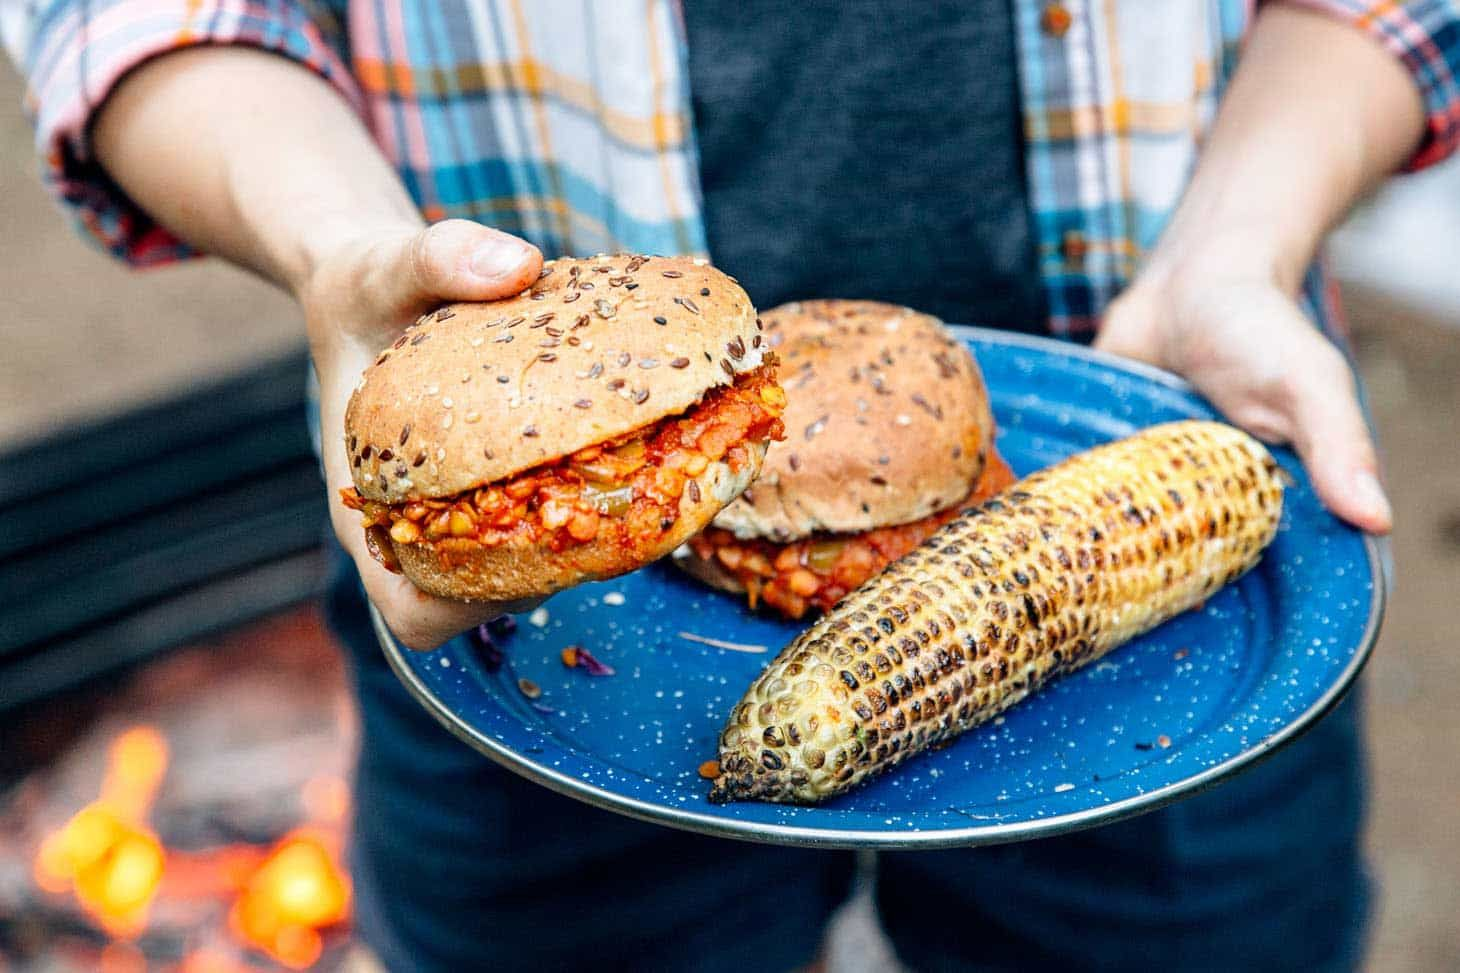 Red lentil sloppy joes recipe sloppy joe plant based and lentils a plant based approach to a classic camping recipe make these easy one forumfinder Gallery